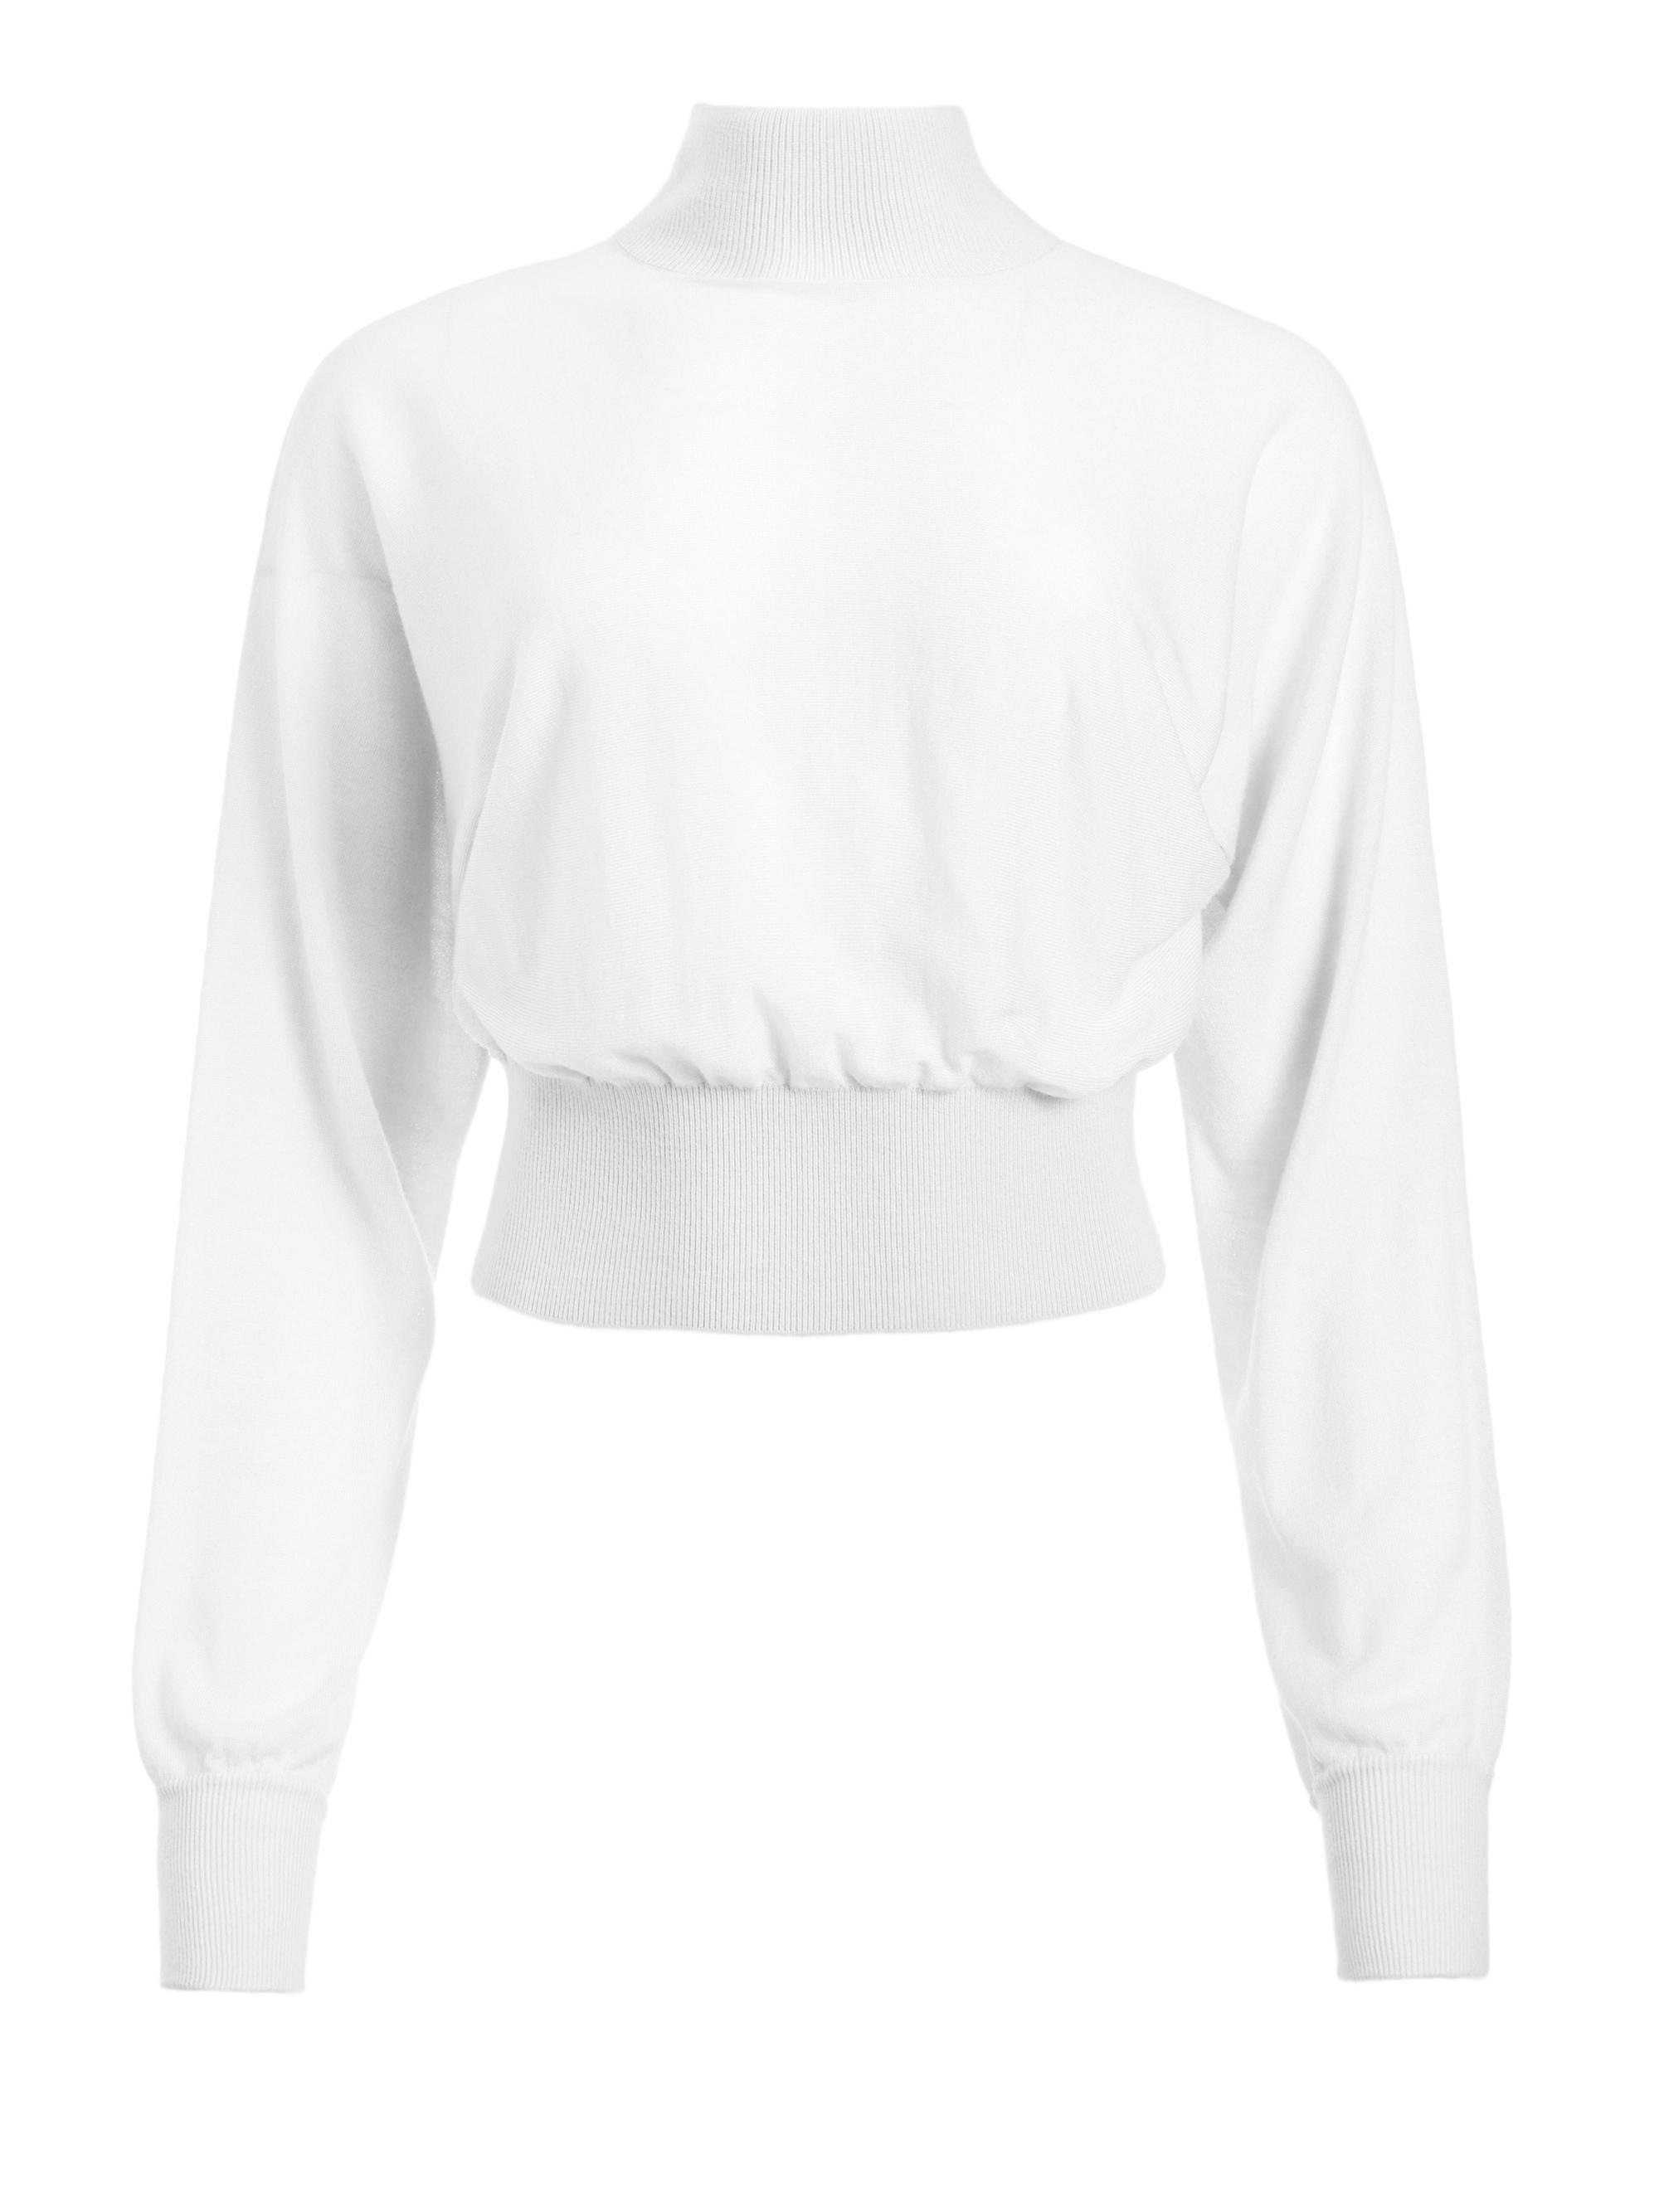 DIA CROPPED SWEATER 5